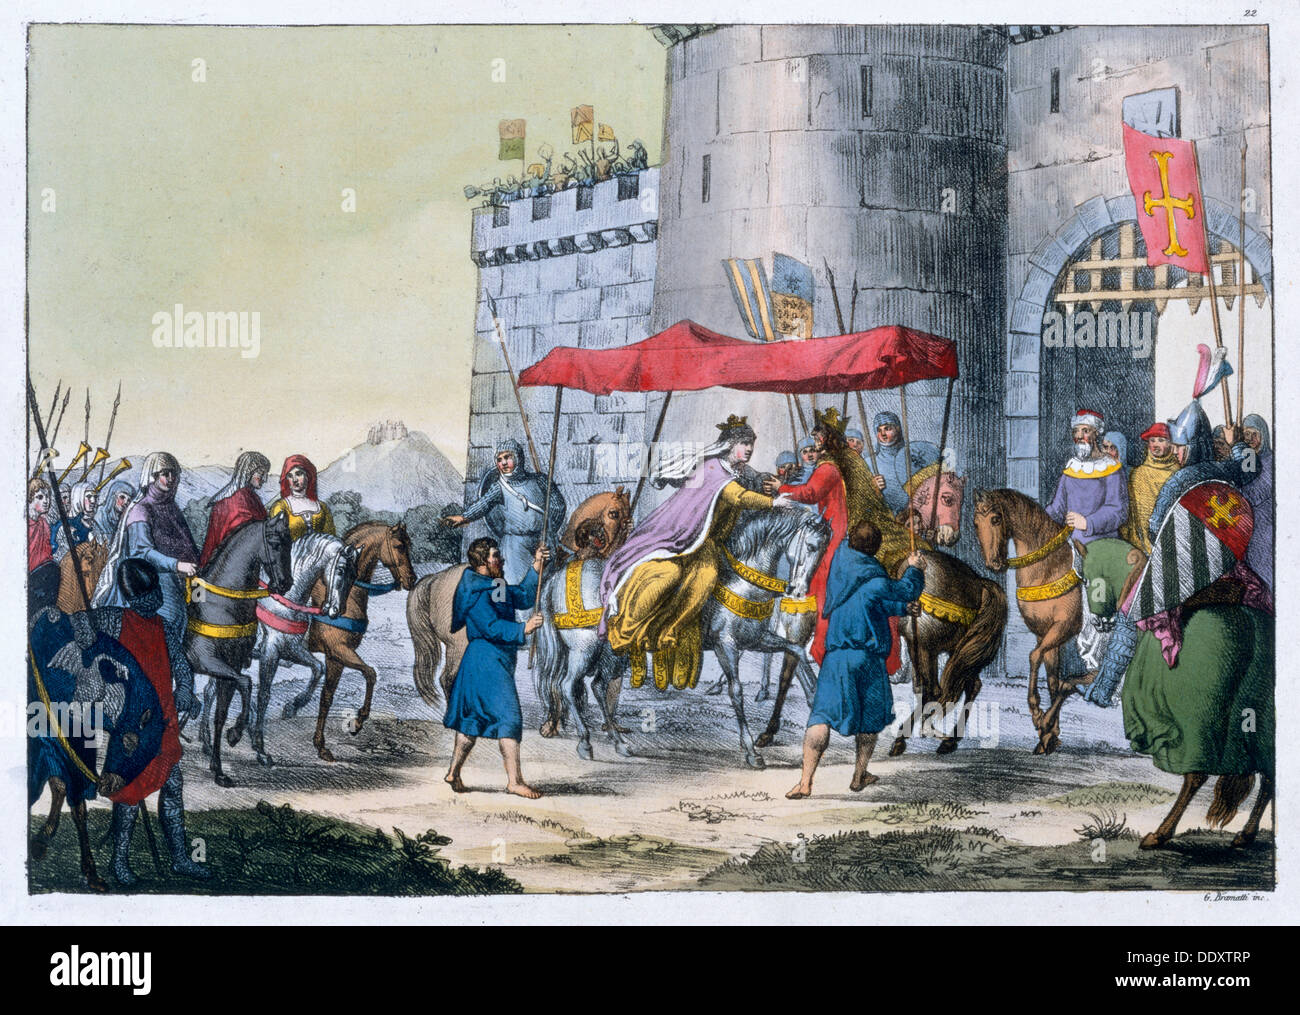 The wedding of Edward I and Eleanor of Castile, 1254 (19th century) Artist: Unknown Stock Photo